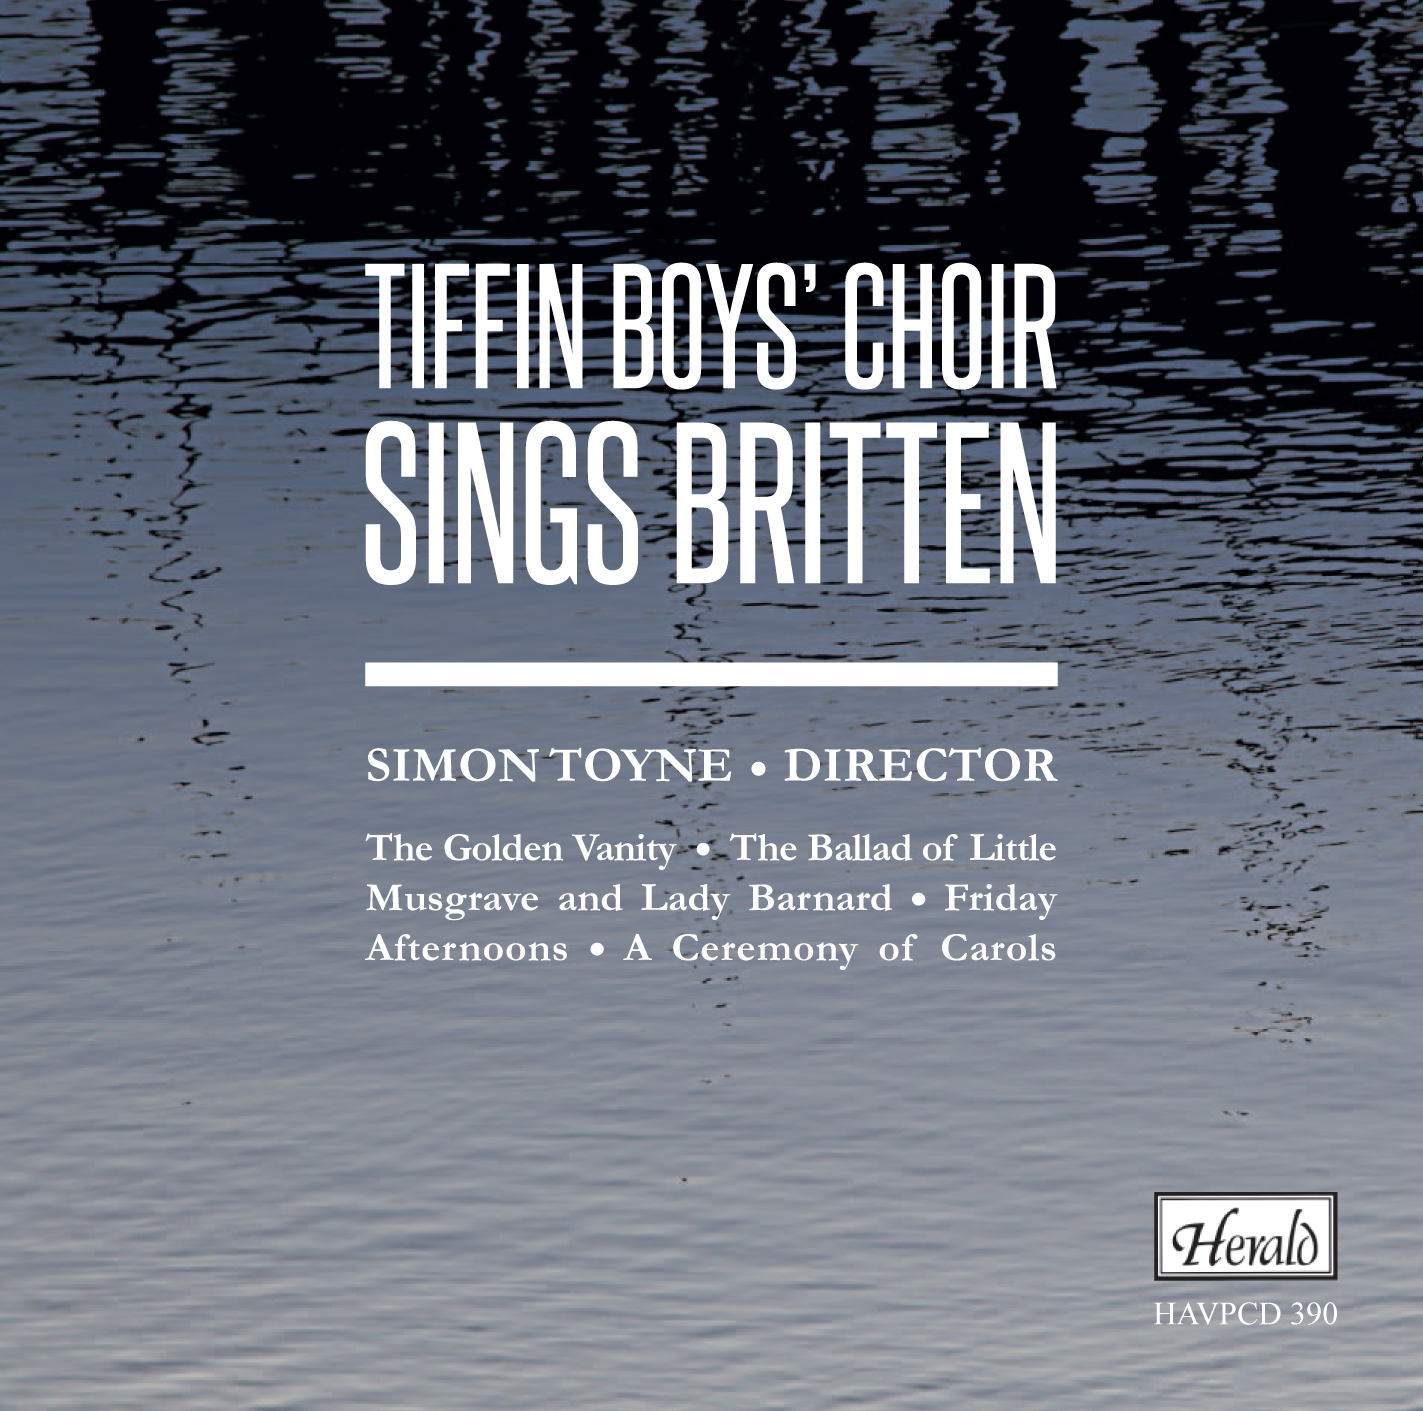 Tiffin Boys' Choir Sings Britten